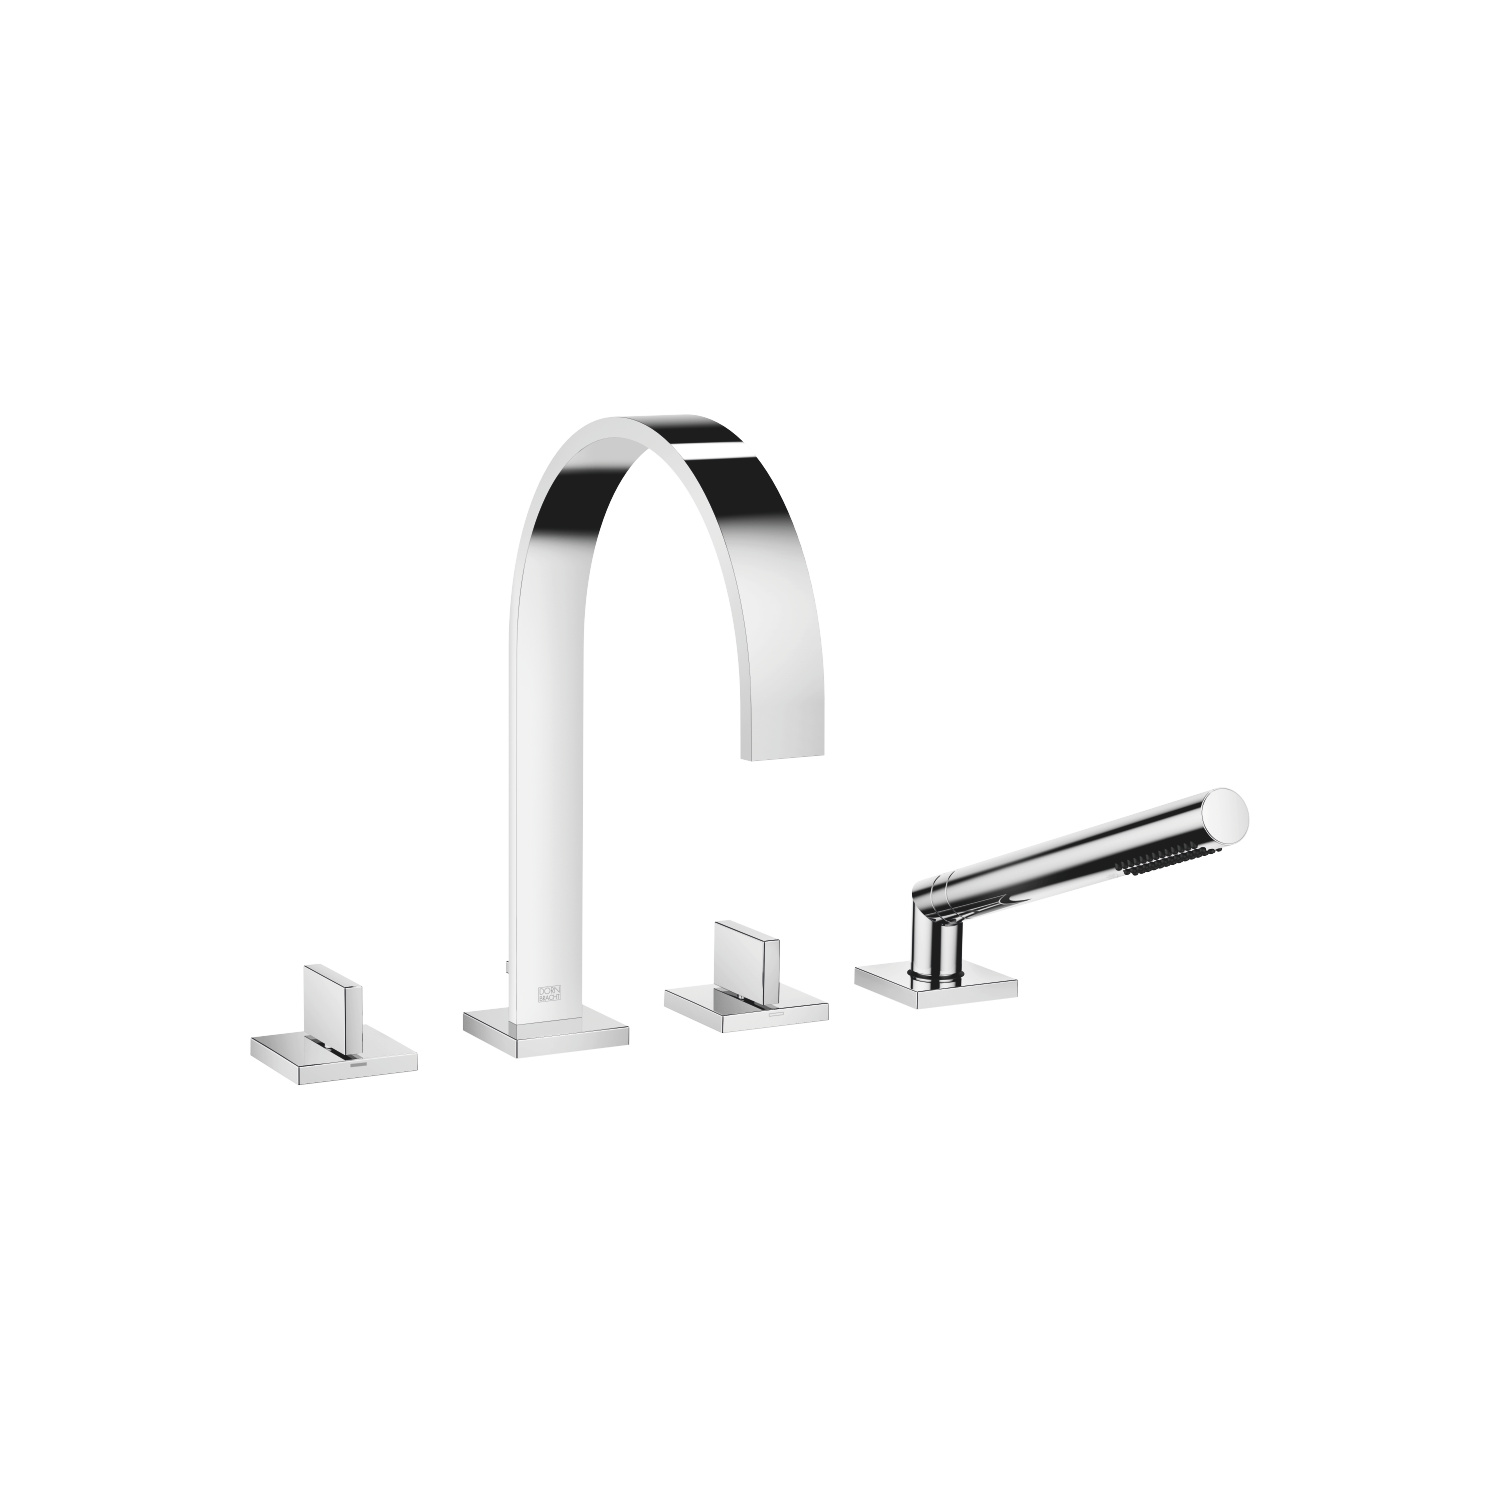 Bath shower set for bath rim or tile edge installation - polished chrome - 27 532 782-00